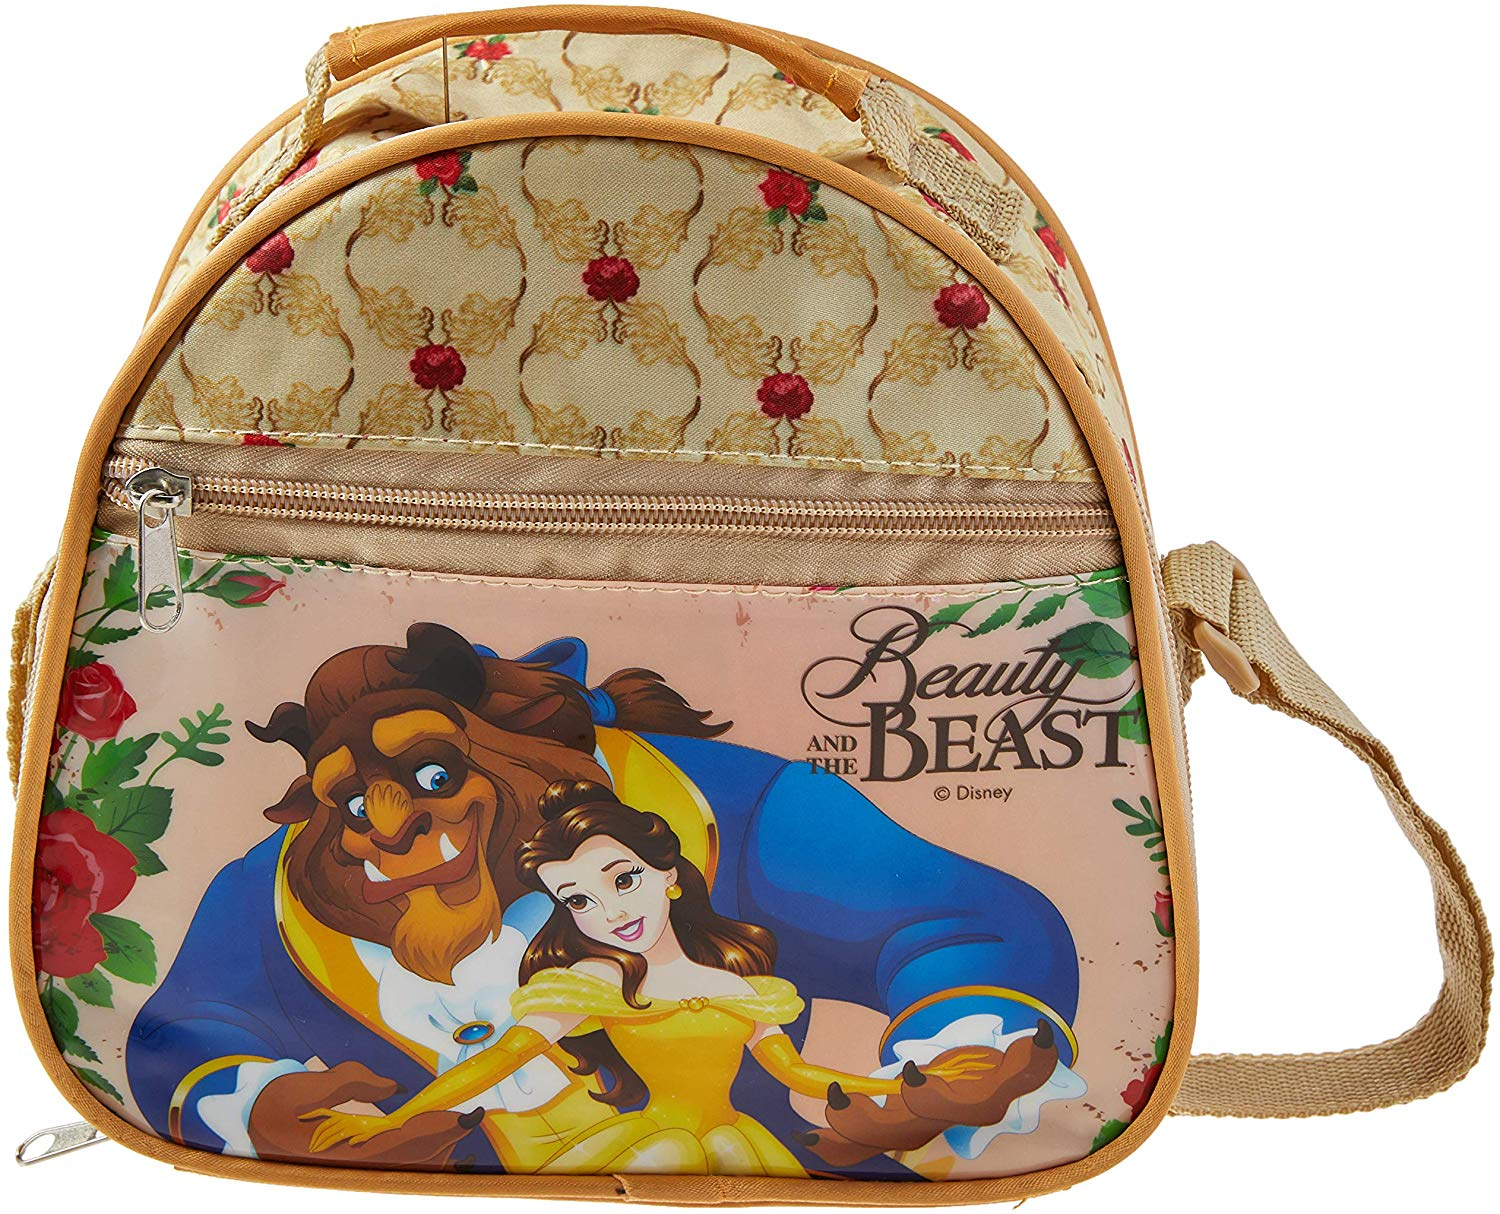 Mochila/Bolsa Bela e a Fera (Beauty and the Beast): Disney